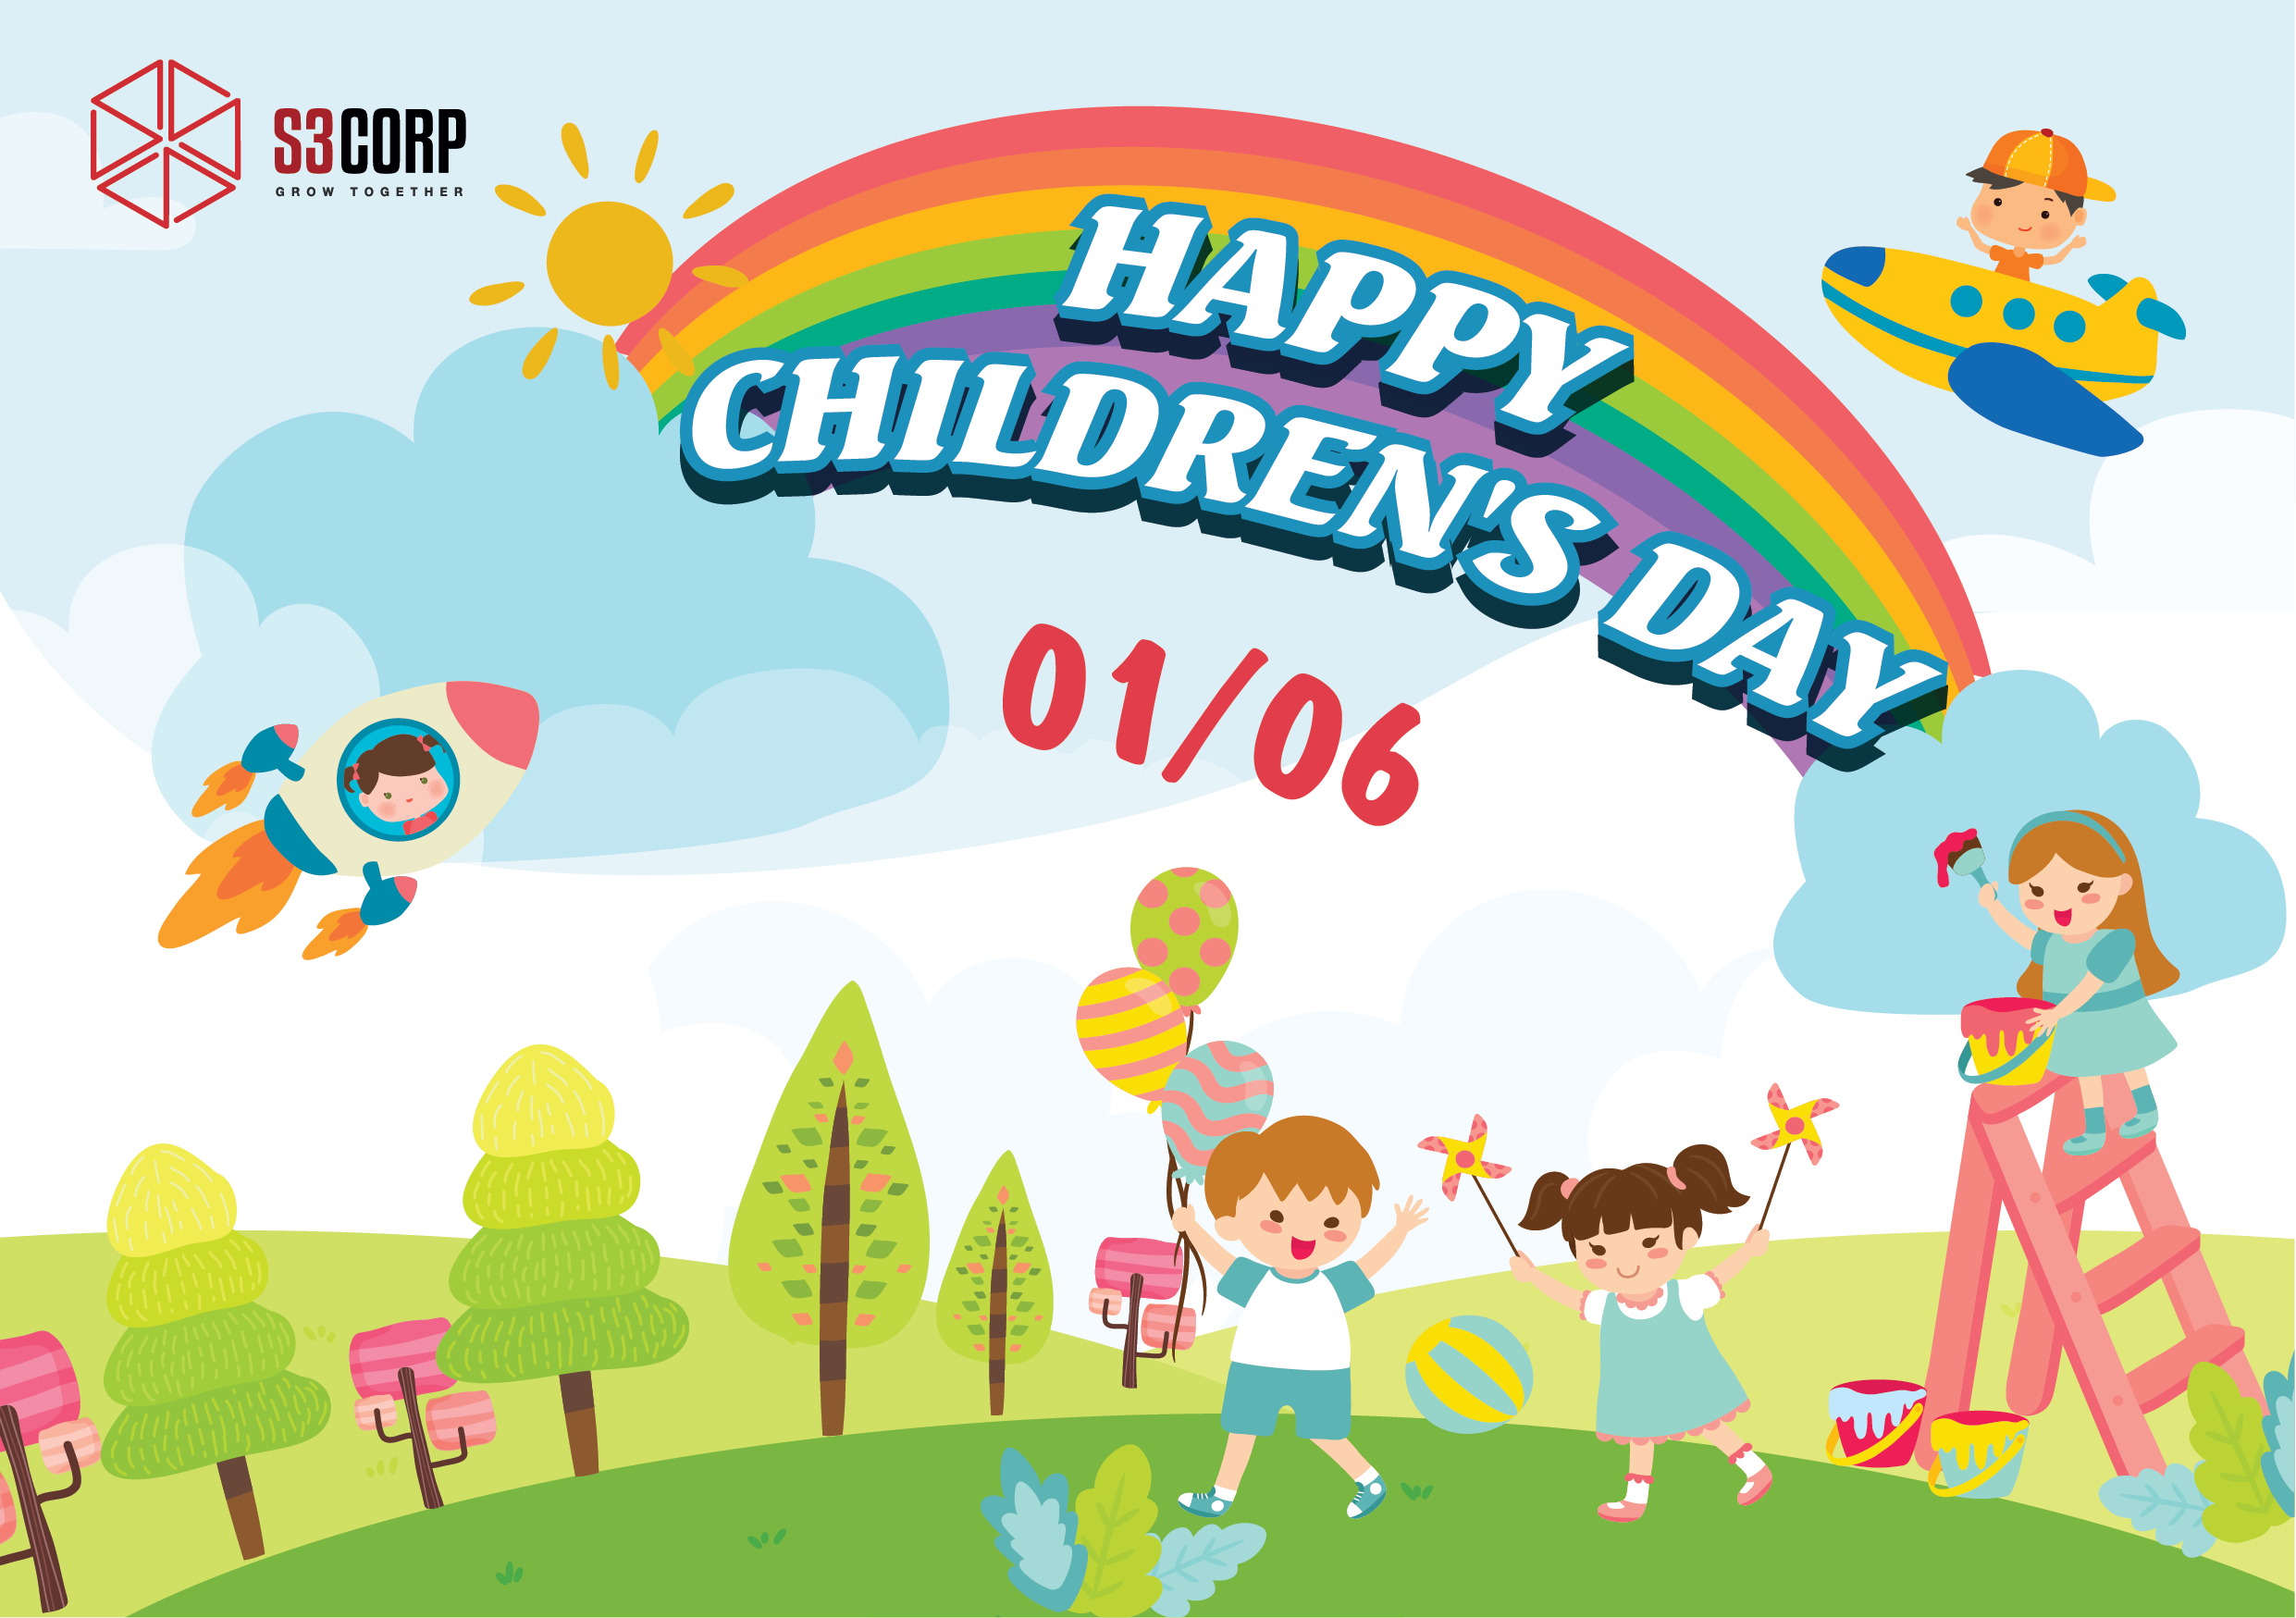 /media/77884/s3corp-happy-childrenday.png